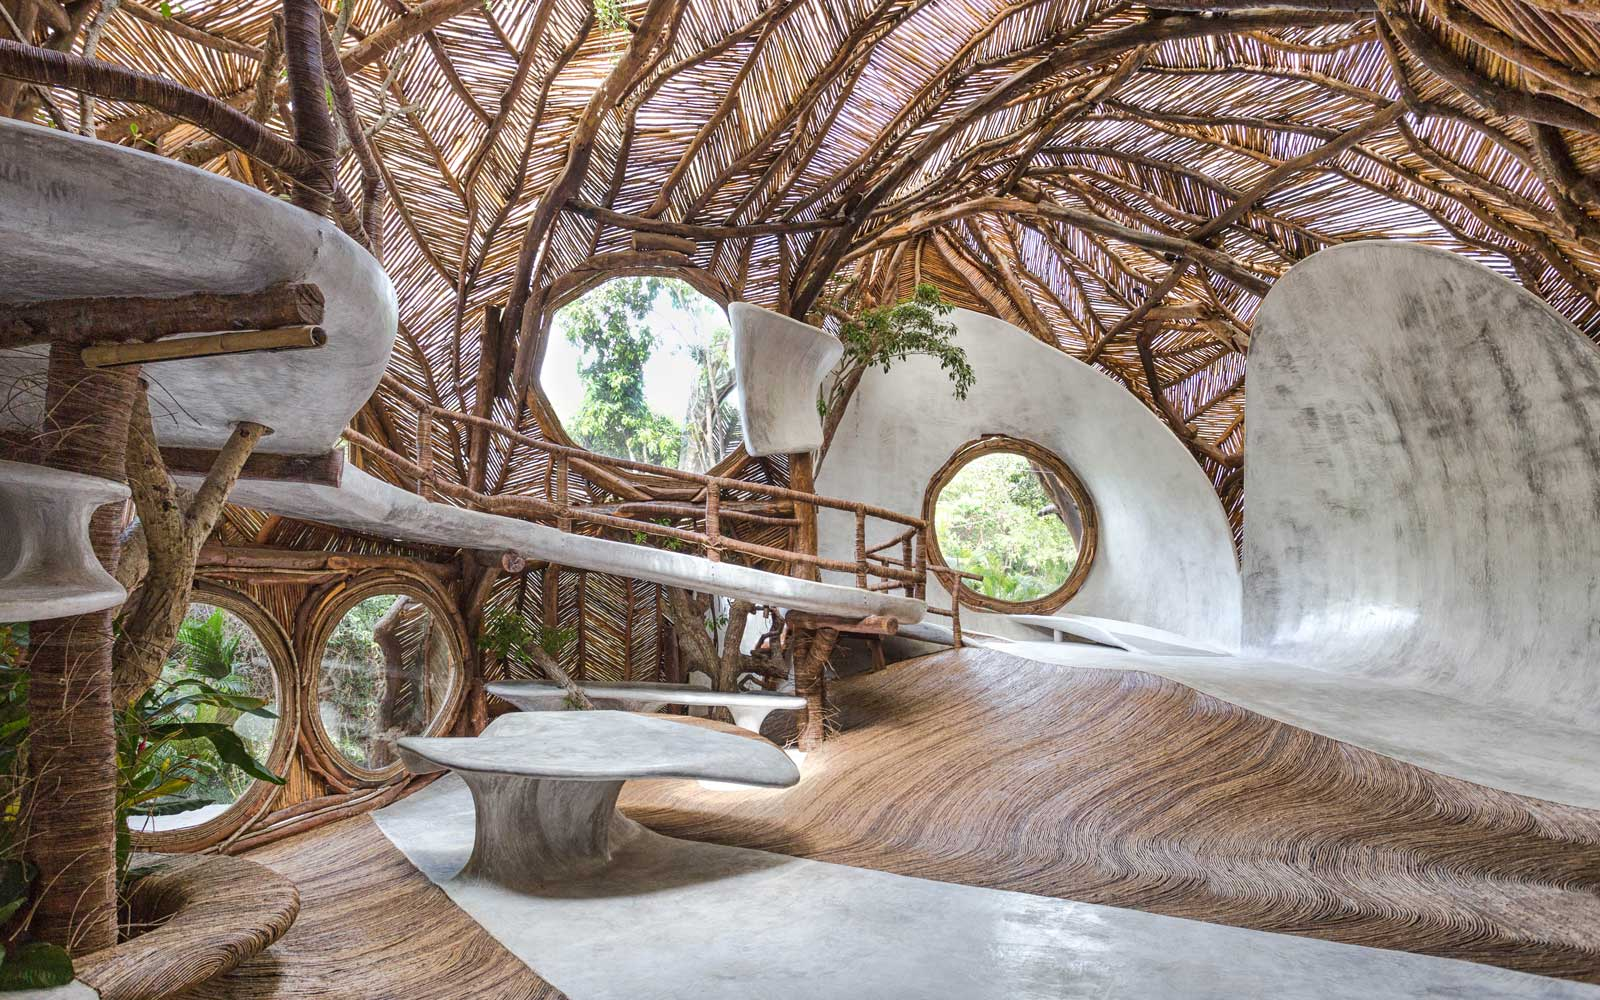 Tulum's Newest Art Gallery Is in a Treehouse — and You Have to Take Off Your Shoes to Enter